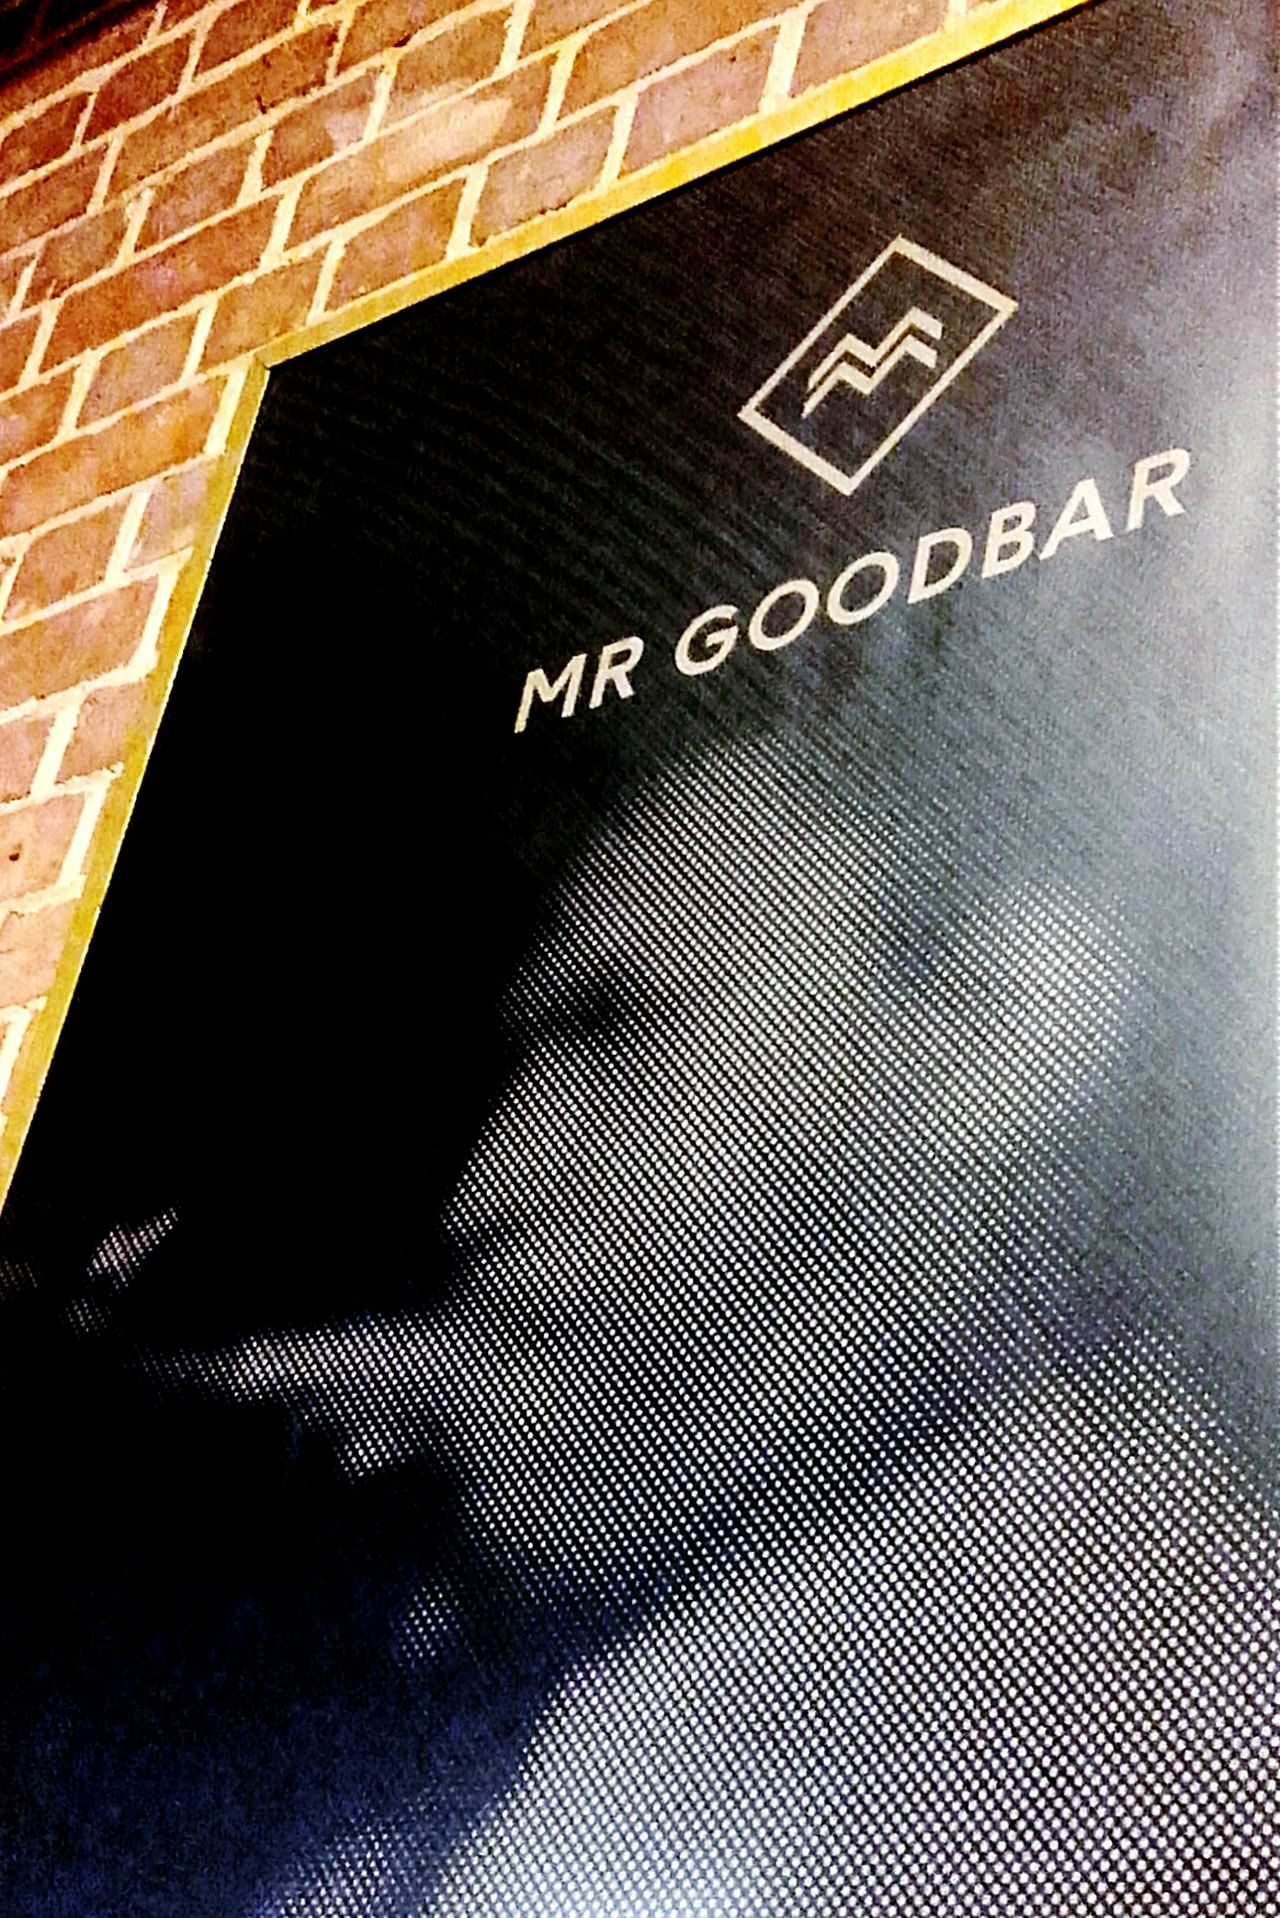 Who Is Mister Goodbar? Poster Art Sign Posters Posterart Poster Collection Poster Art Poster Wall Mr Goodbar Signs Poster! Posterwall Agoodplacetosin.com Posterporn GOODBAR Postercollection Advertising Signs Wall Poster Advertisingposters Advertisement Posters Advertisement Signage Signporn Signs, Signs, & More Signs Signage